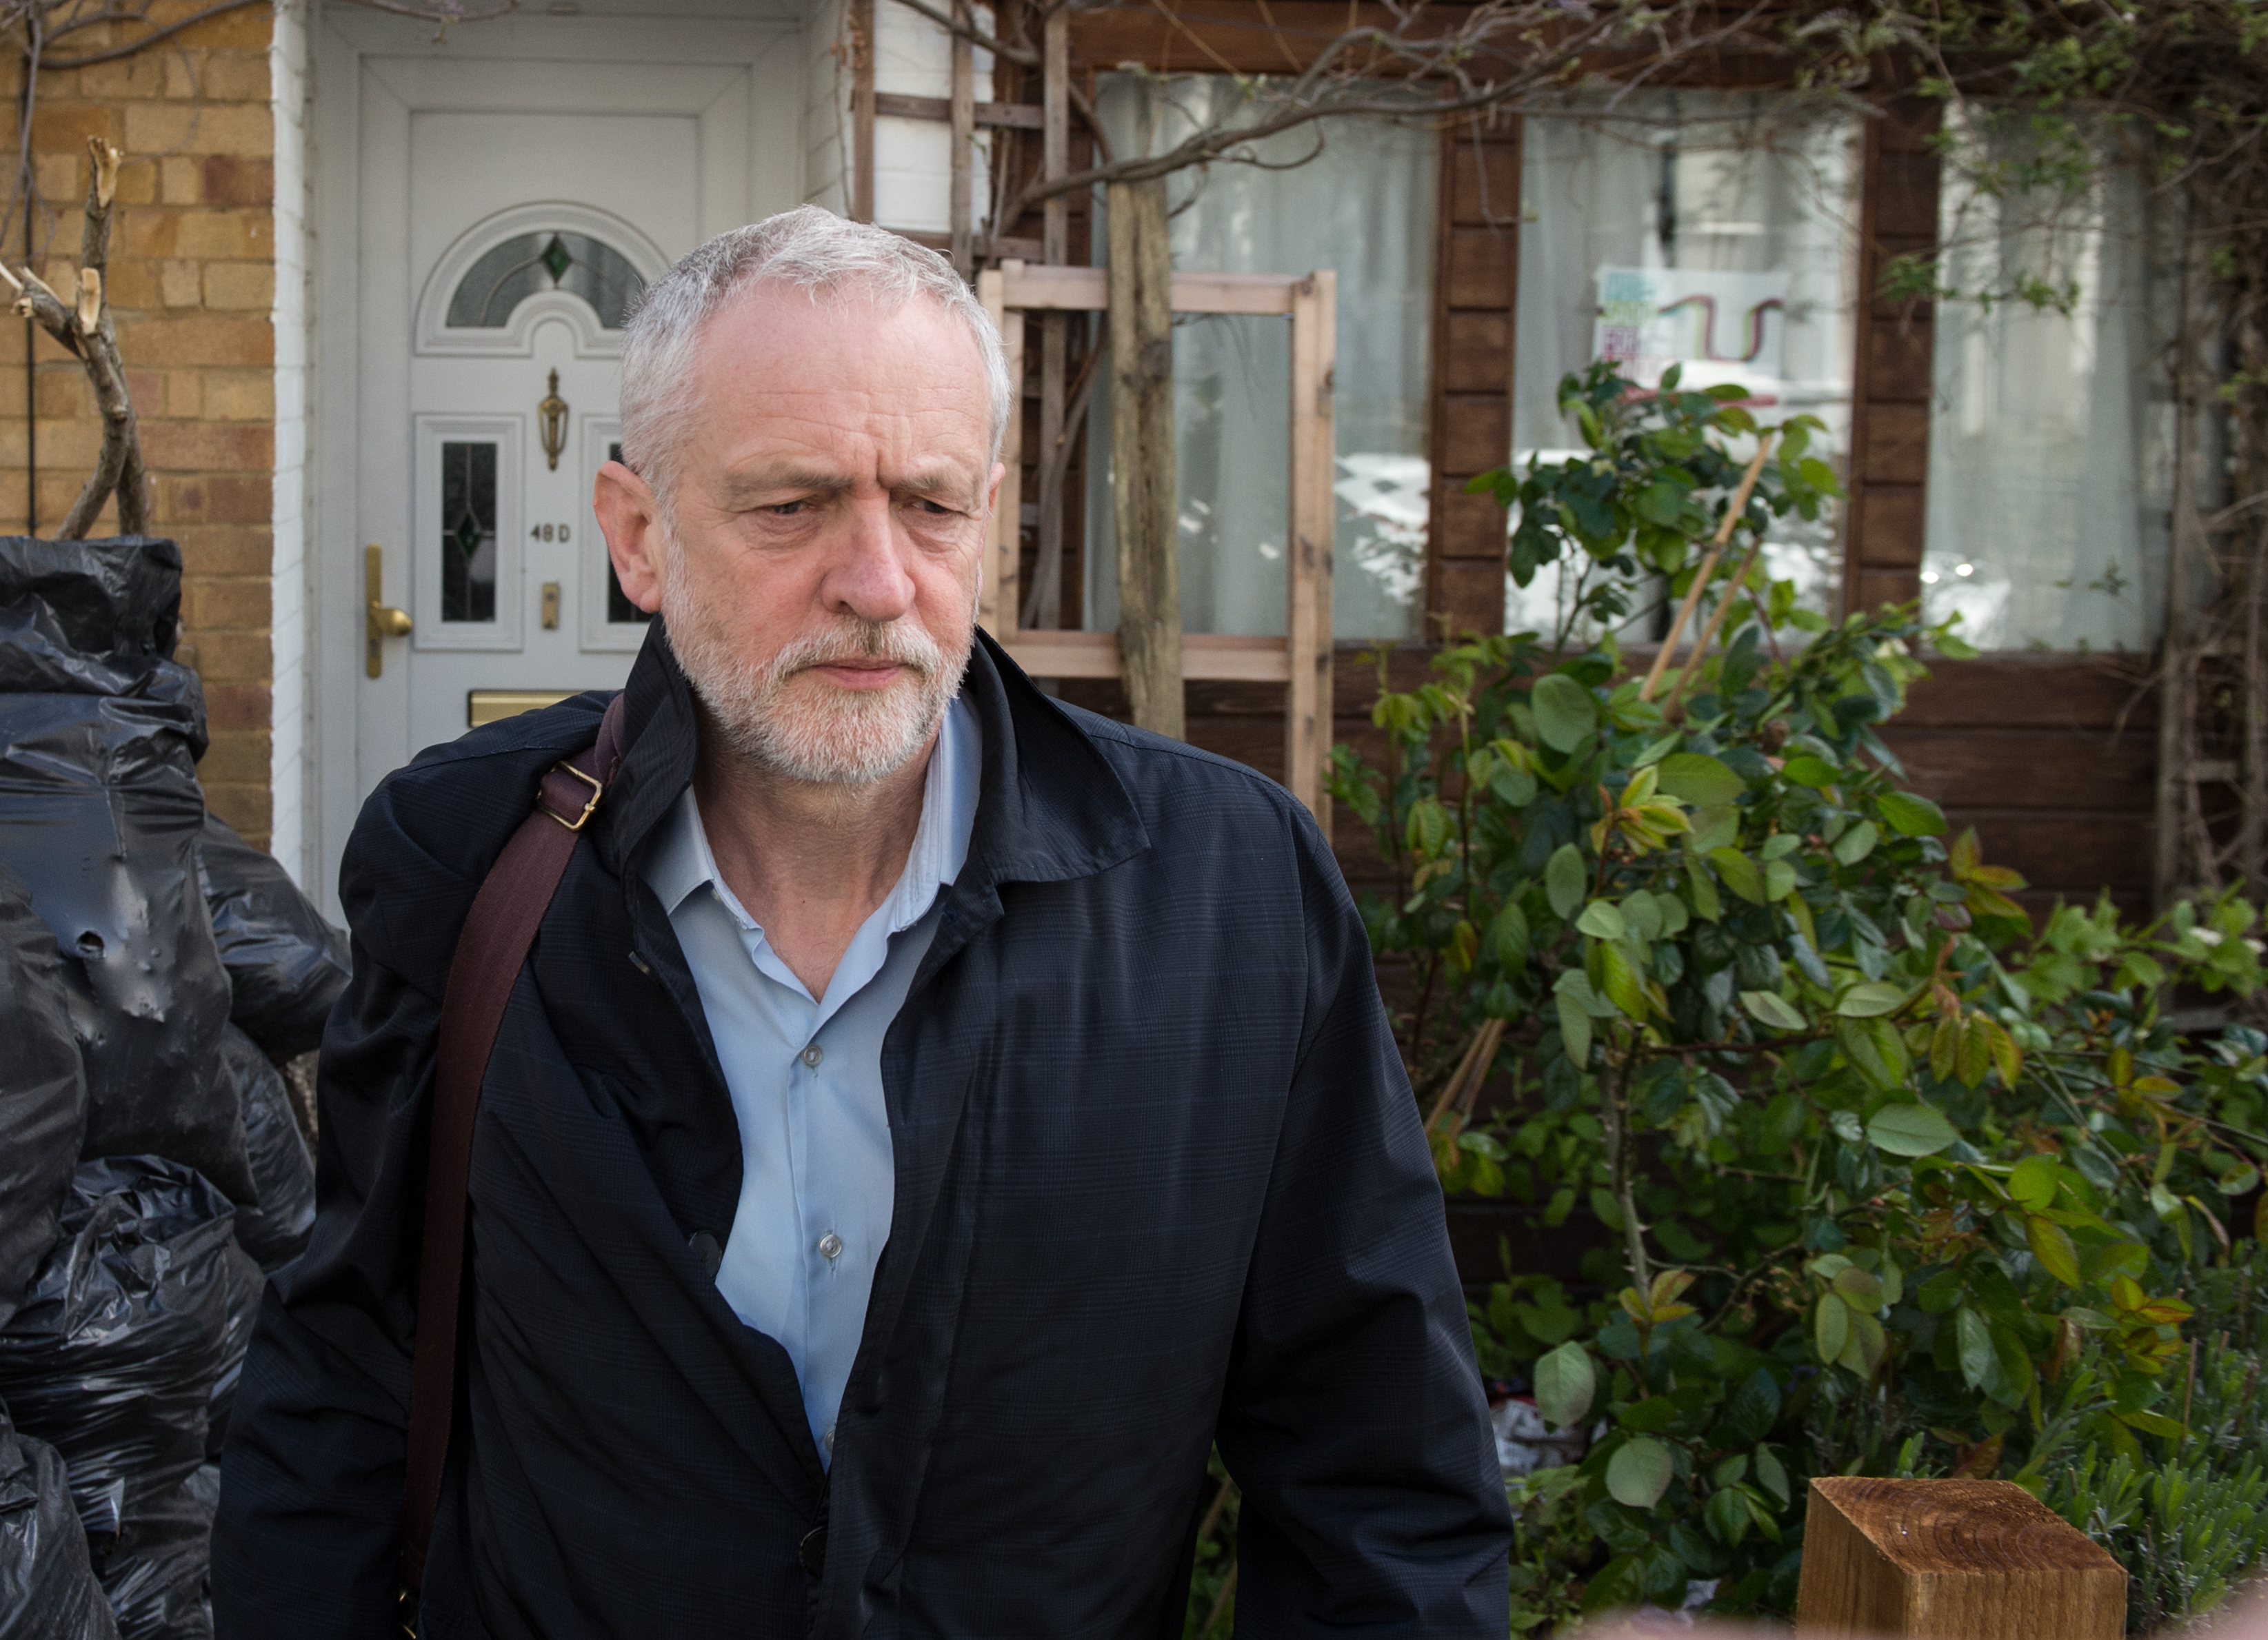 LONDON, ENGLAND - APRIL 29: Labour party leader Jeremy Corbyn leaves his home in the morning on April 29, 2016 in London, England. Mr Corbyn has denied that his party is in crisis after Ken Livingstone was suspended from the party for comments made defending an MP accused of anti-Semitism.